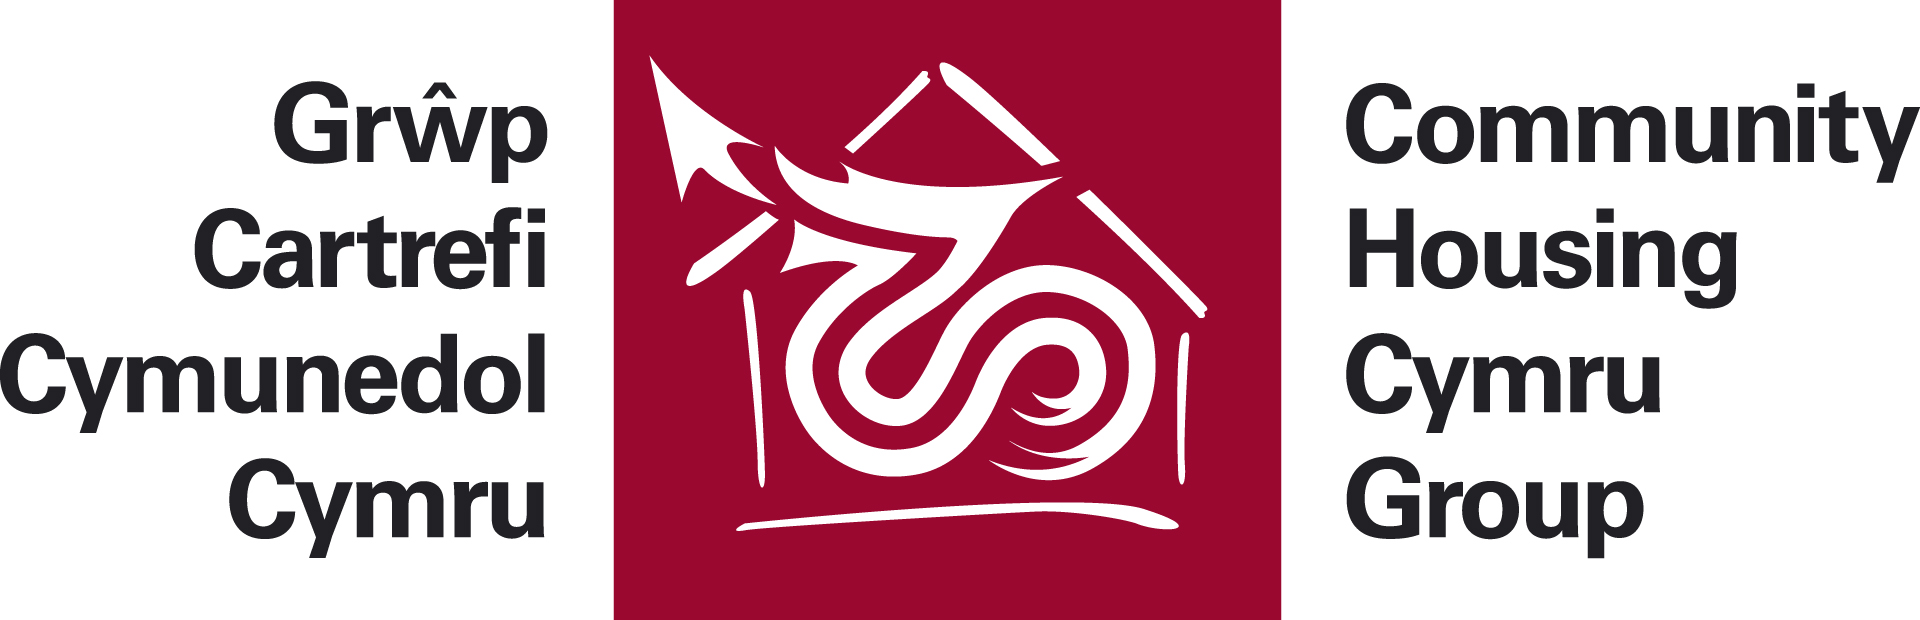 CHC Group Logo.jpg